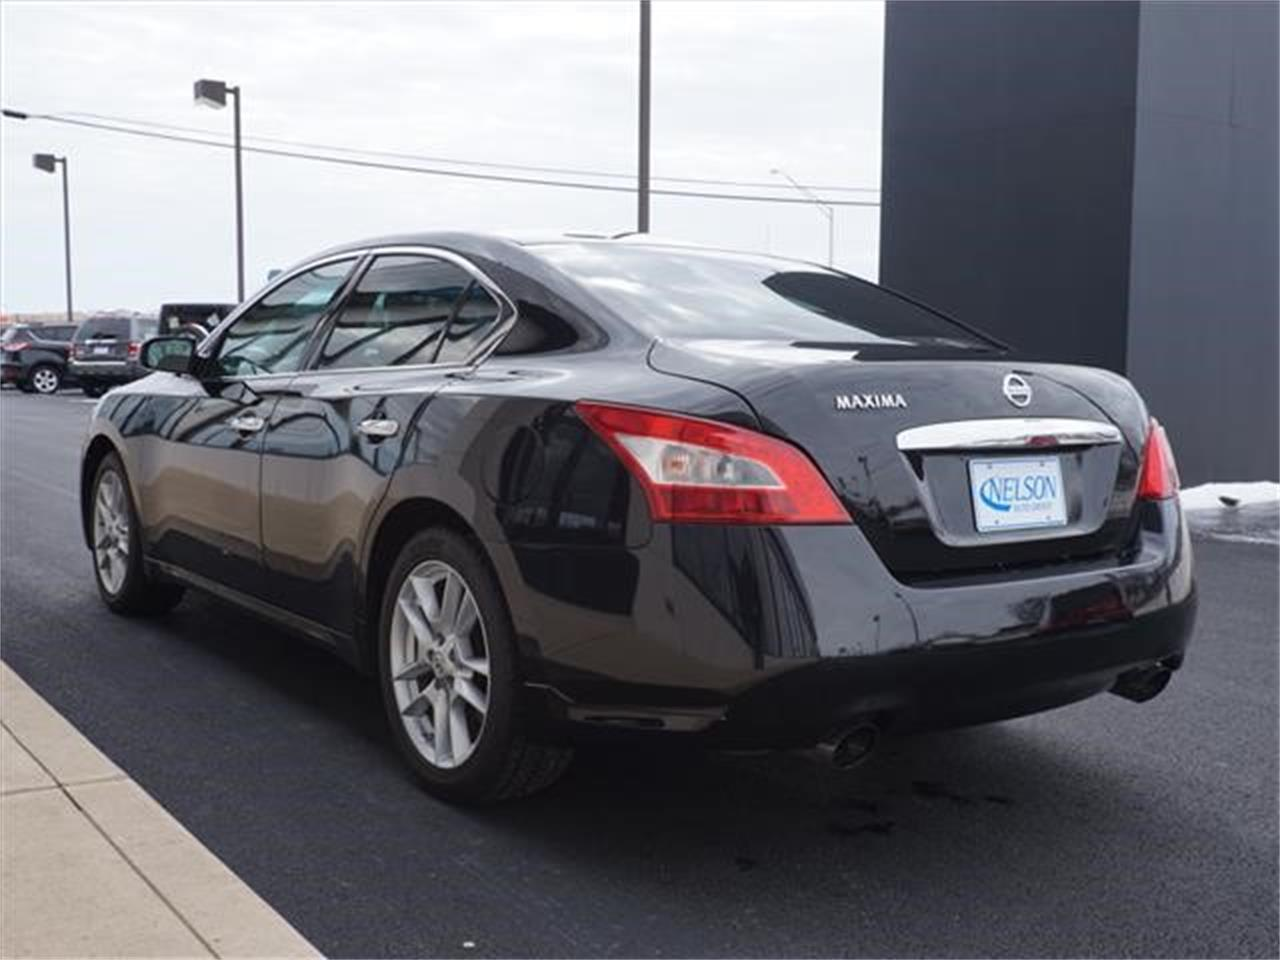 Large Picture of '10 Maxima - $9,999.00 - KHAD